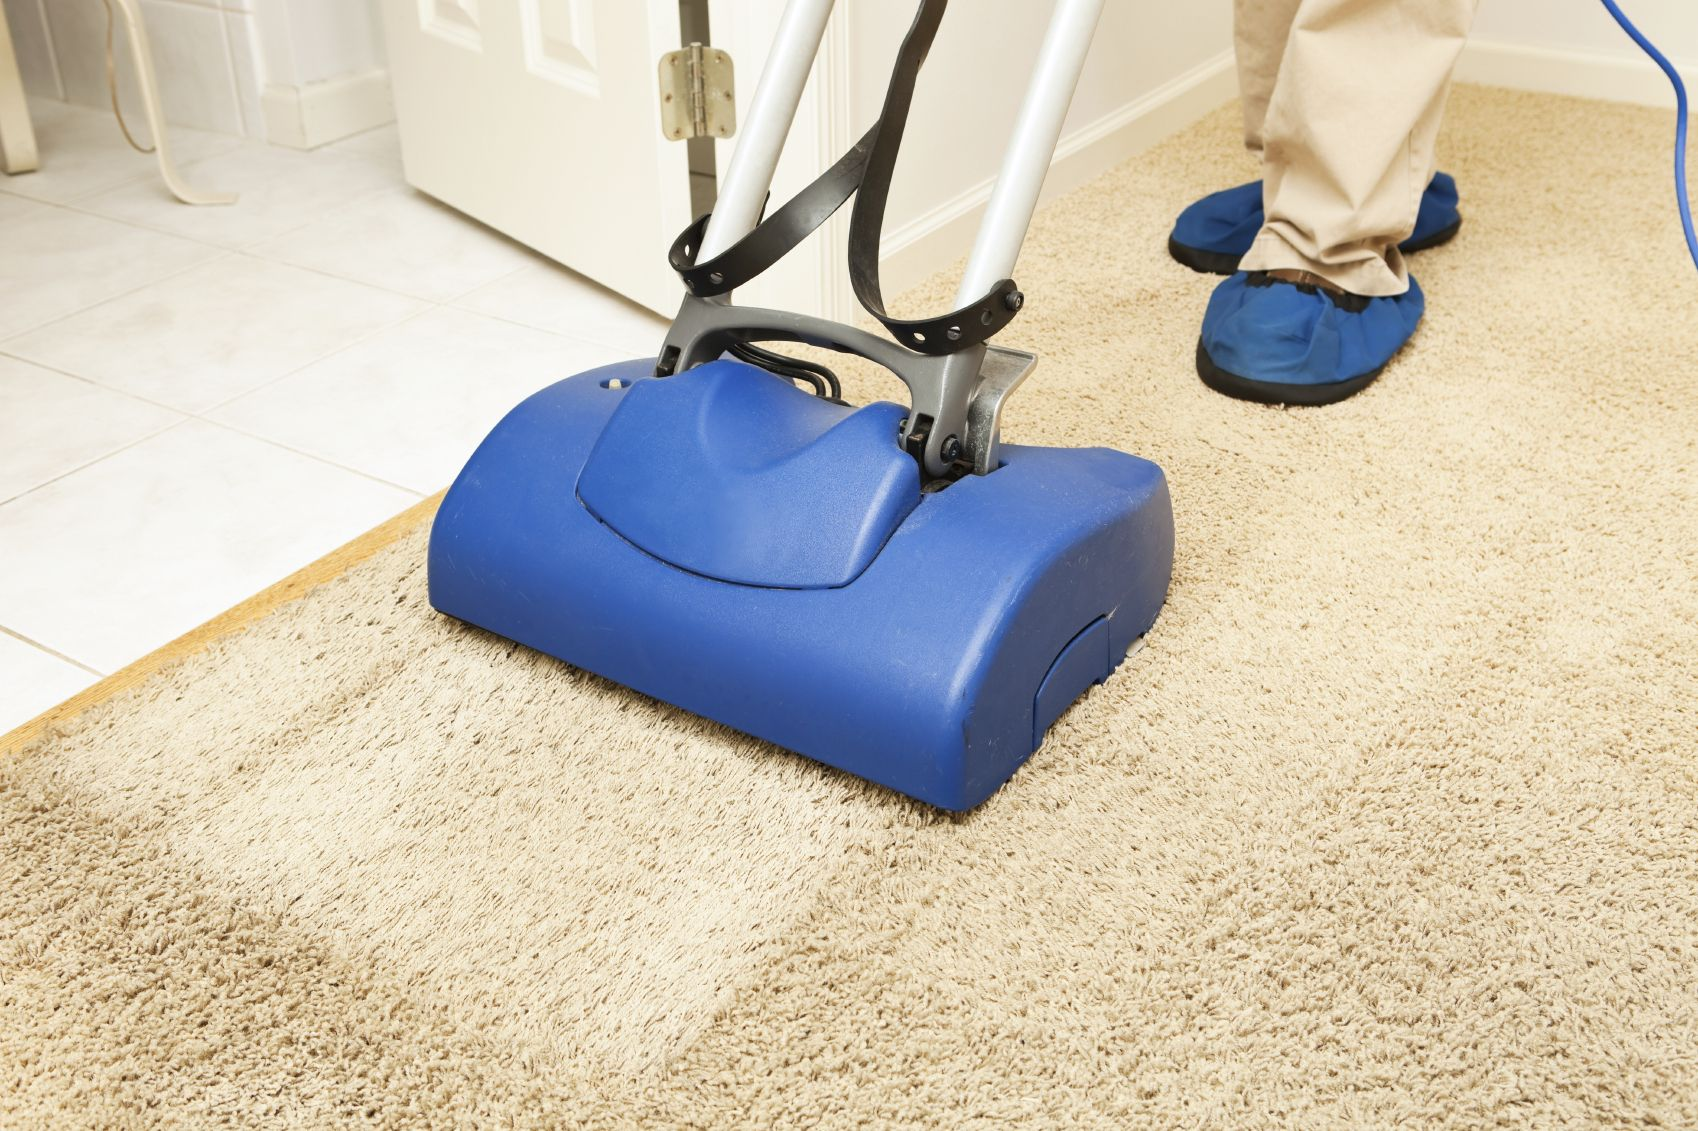 carpet steam cleaning, How Long Will My Carpets Take to Dry After Steam Cleaning